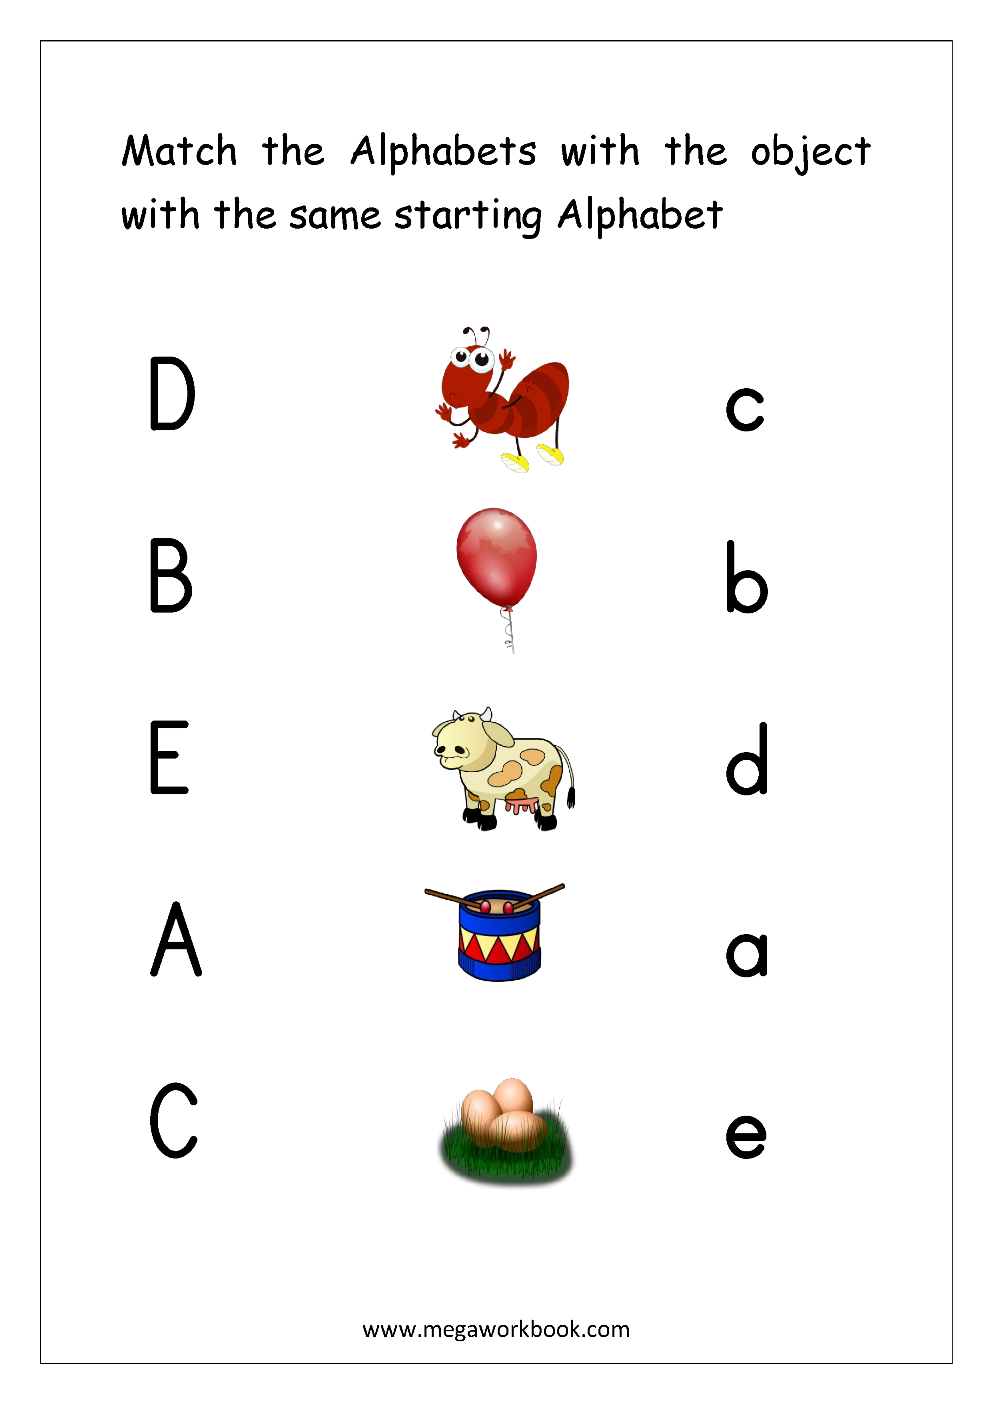 Free English Worksheets - Alphabet Matching - MegaWorkbook